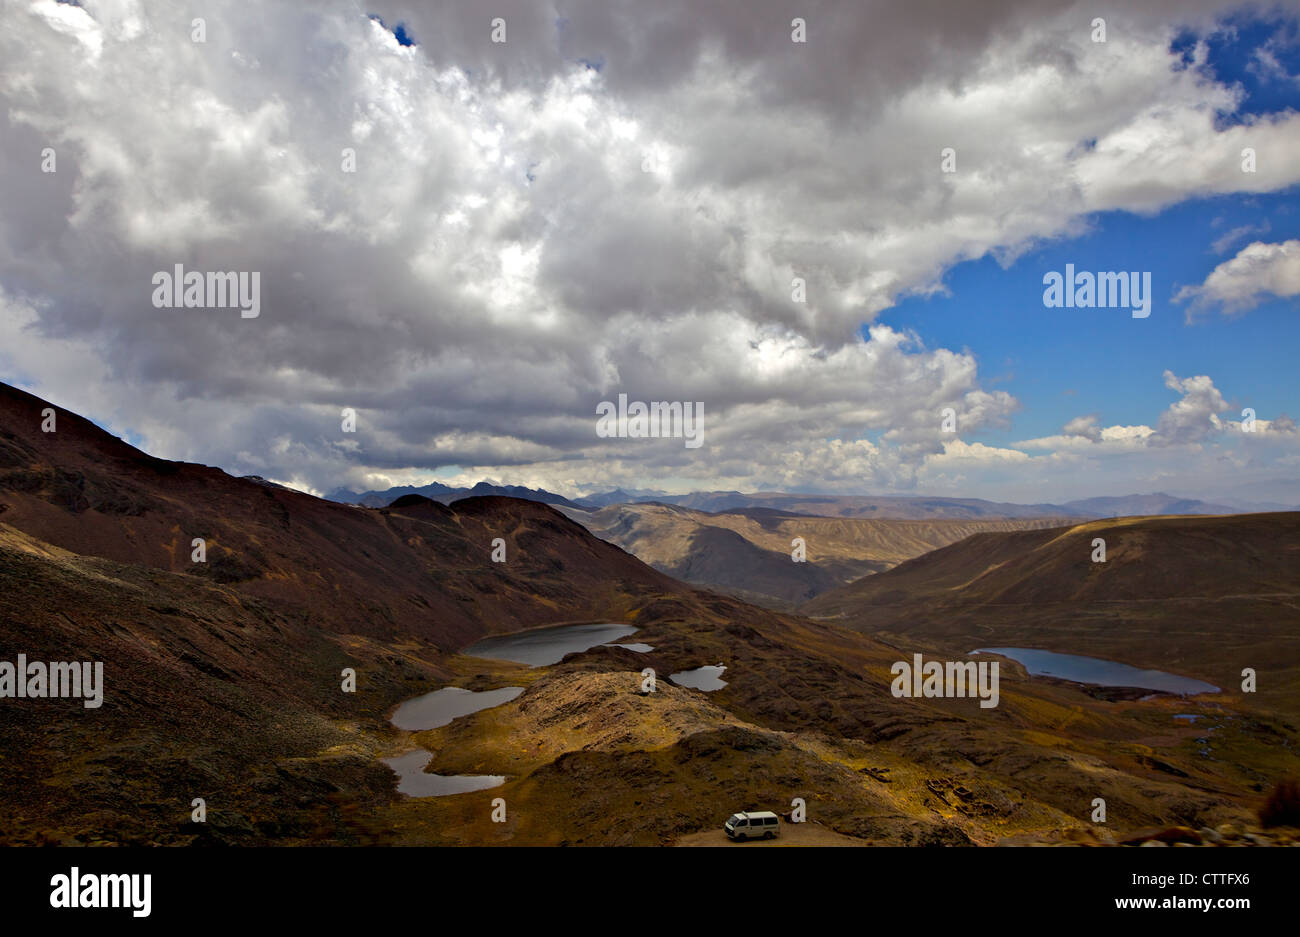 View from Mt. Chacaltaya altiplano in distance, Calahuyo near La Paz, Bolivia, Andes, South America, - Stock Image